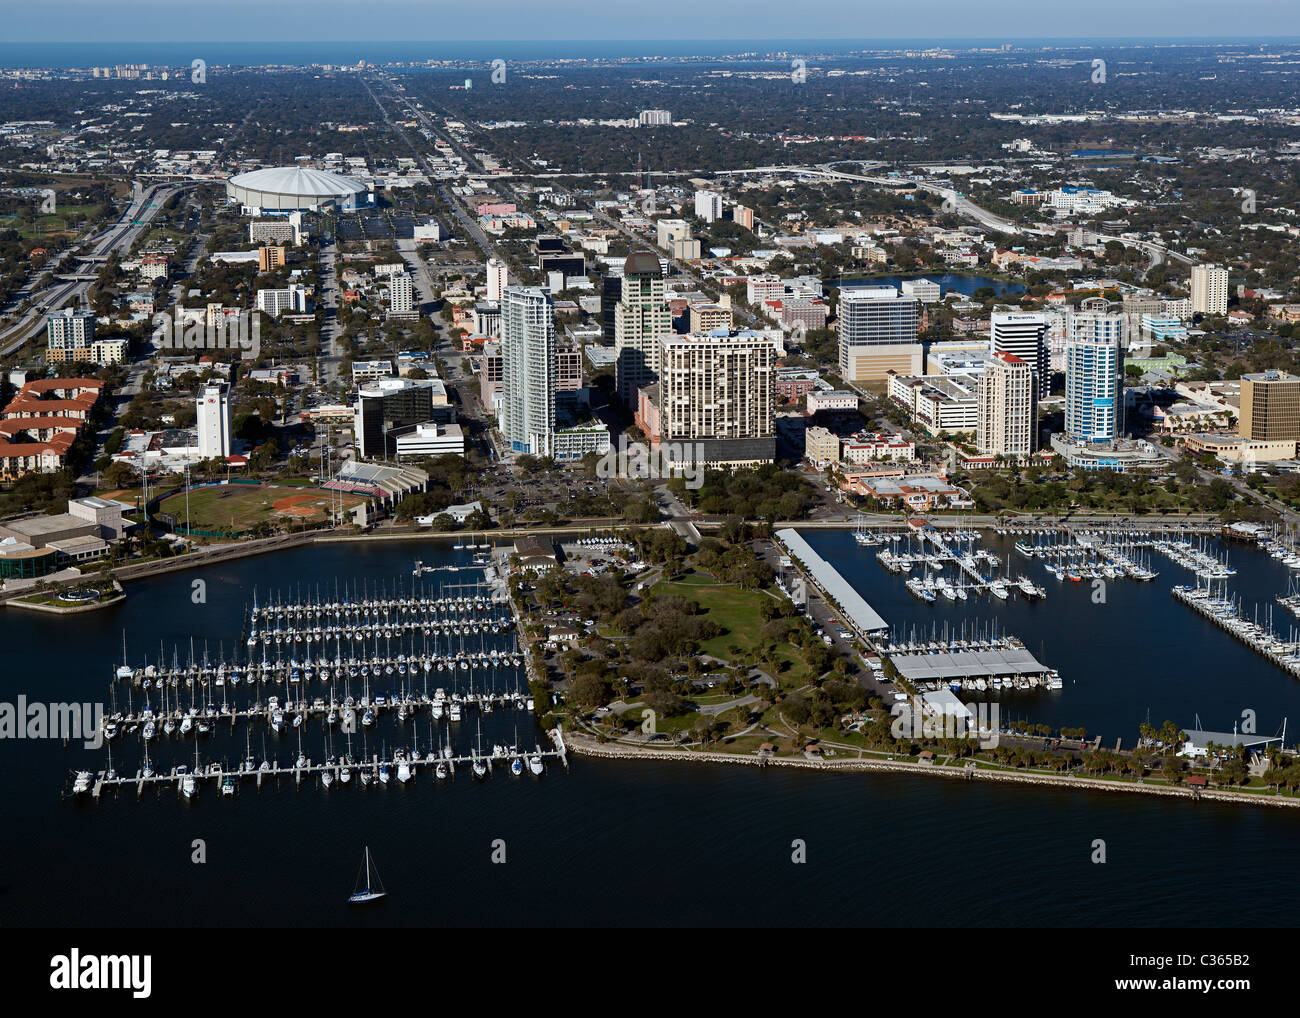 aerial view above St. Petersburg Florida - Stock Image